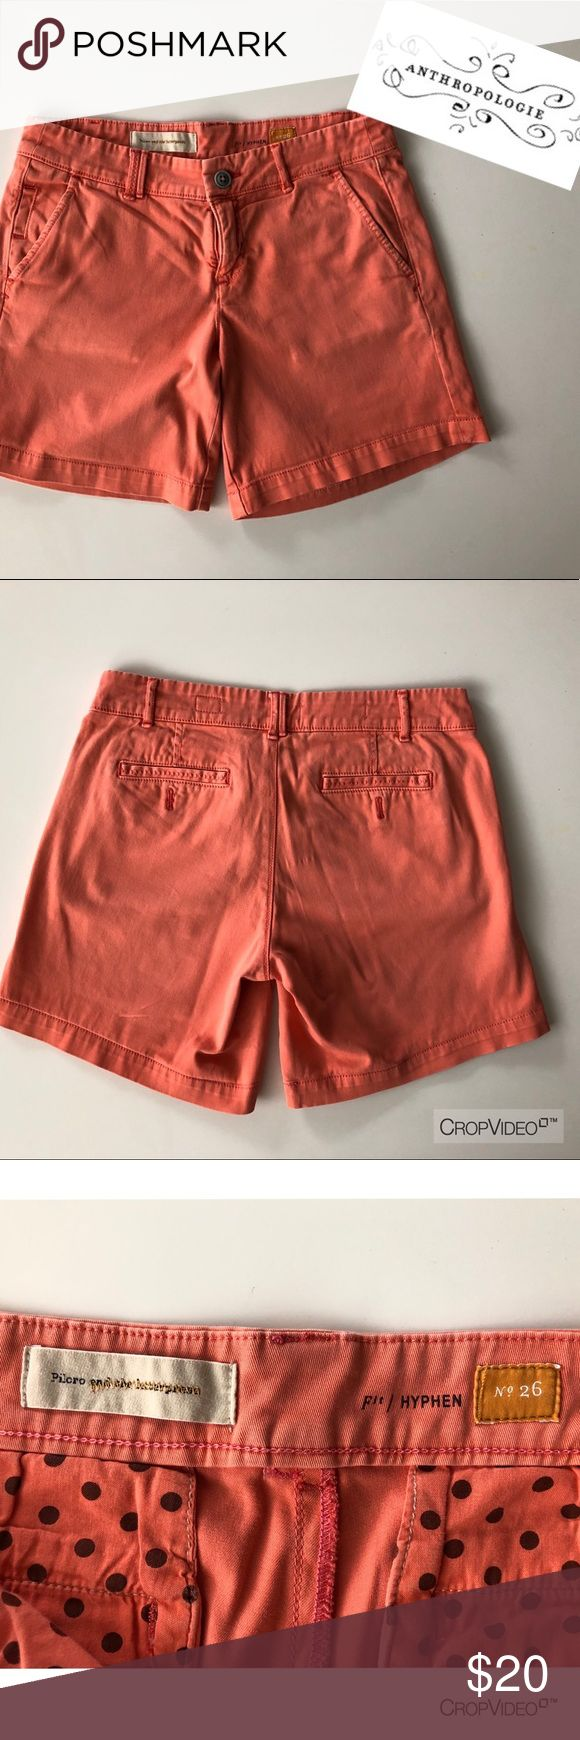 Anthropologie pilcro hyphen peach shorts, size 26 Anthropologie pilcro hyphen peach shorts, size 26.  Gently worn condition, has small lightened spot on front near zipper, see pic.   32in waist 6 1/2 in inseam 14in long   I 💝 offers Anthropologie Shorts